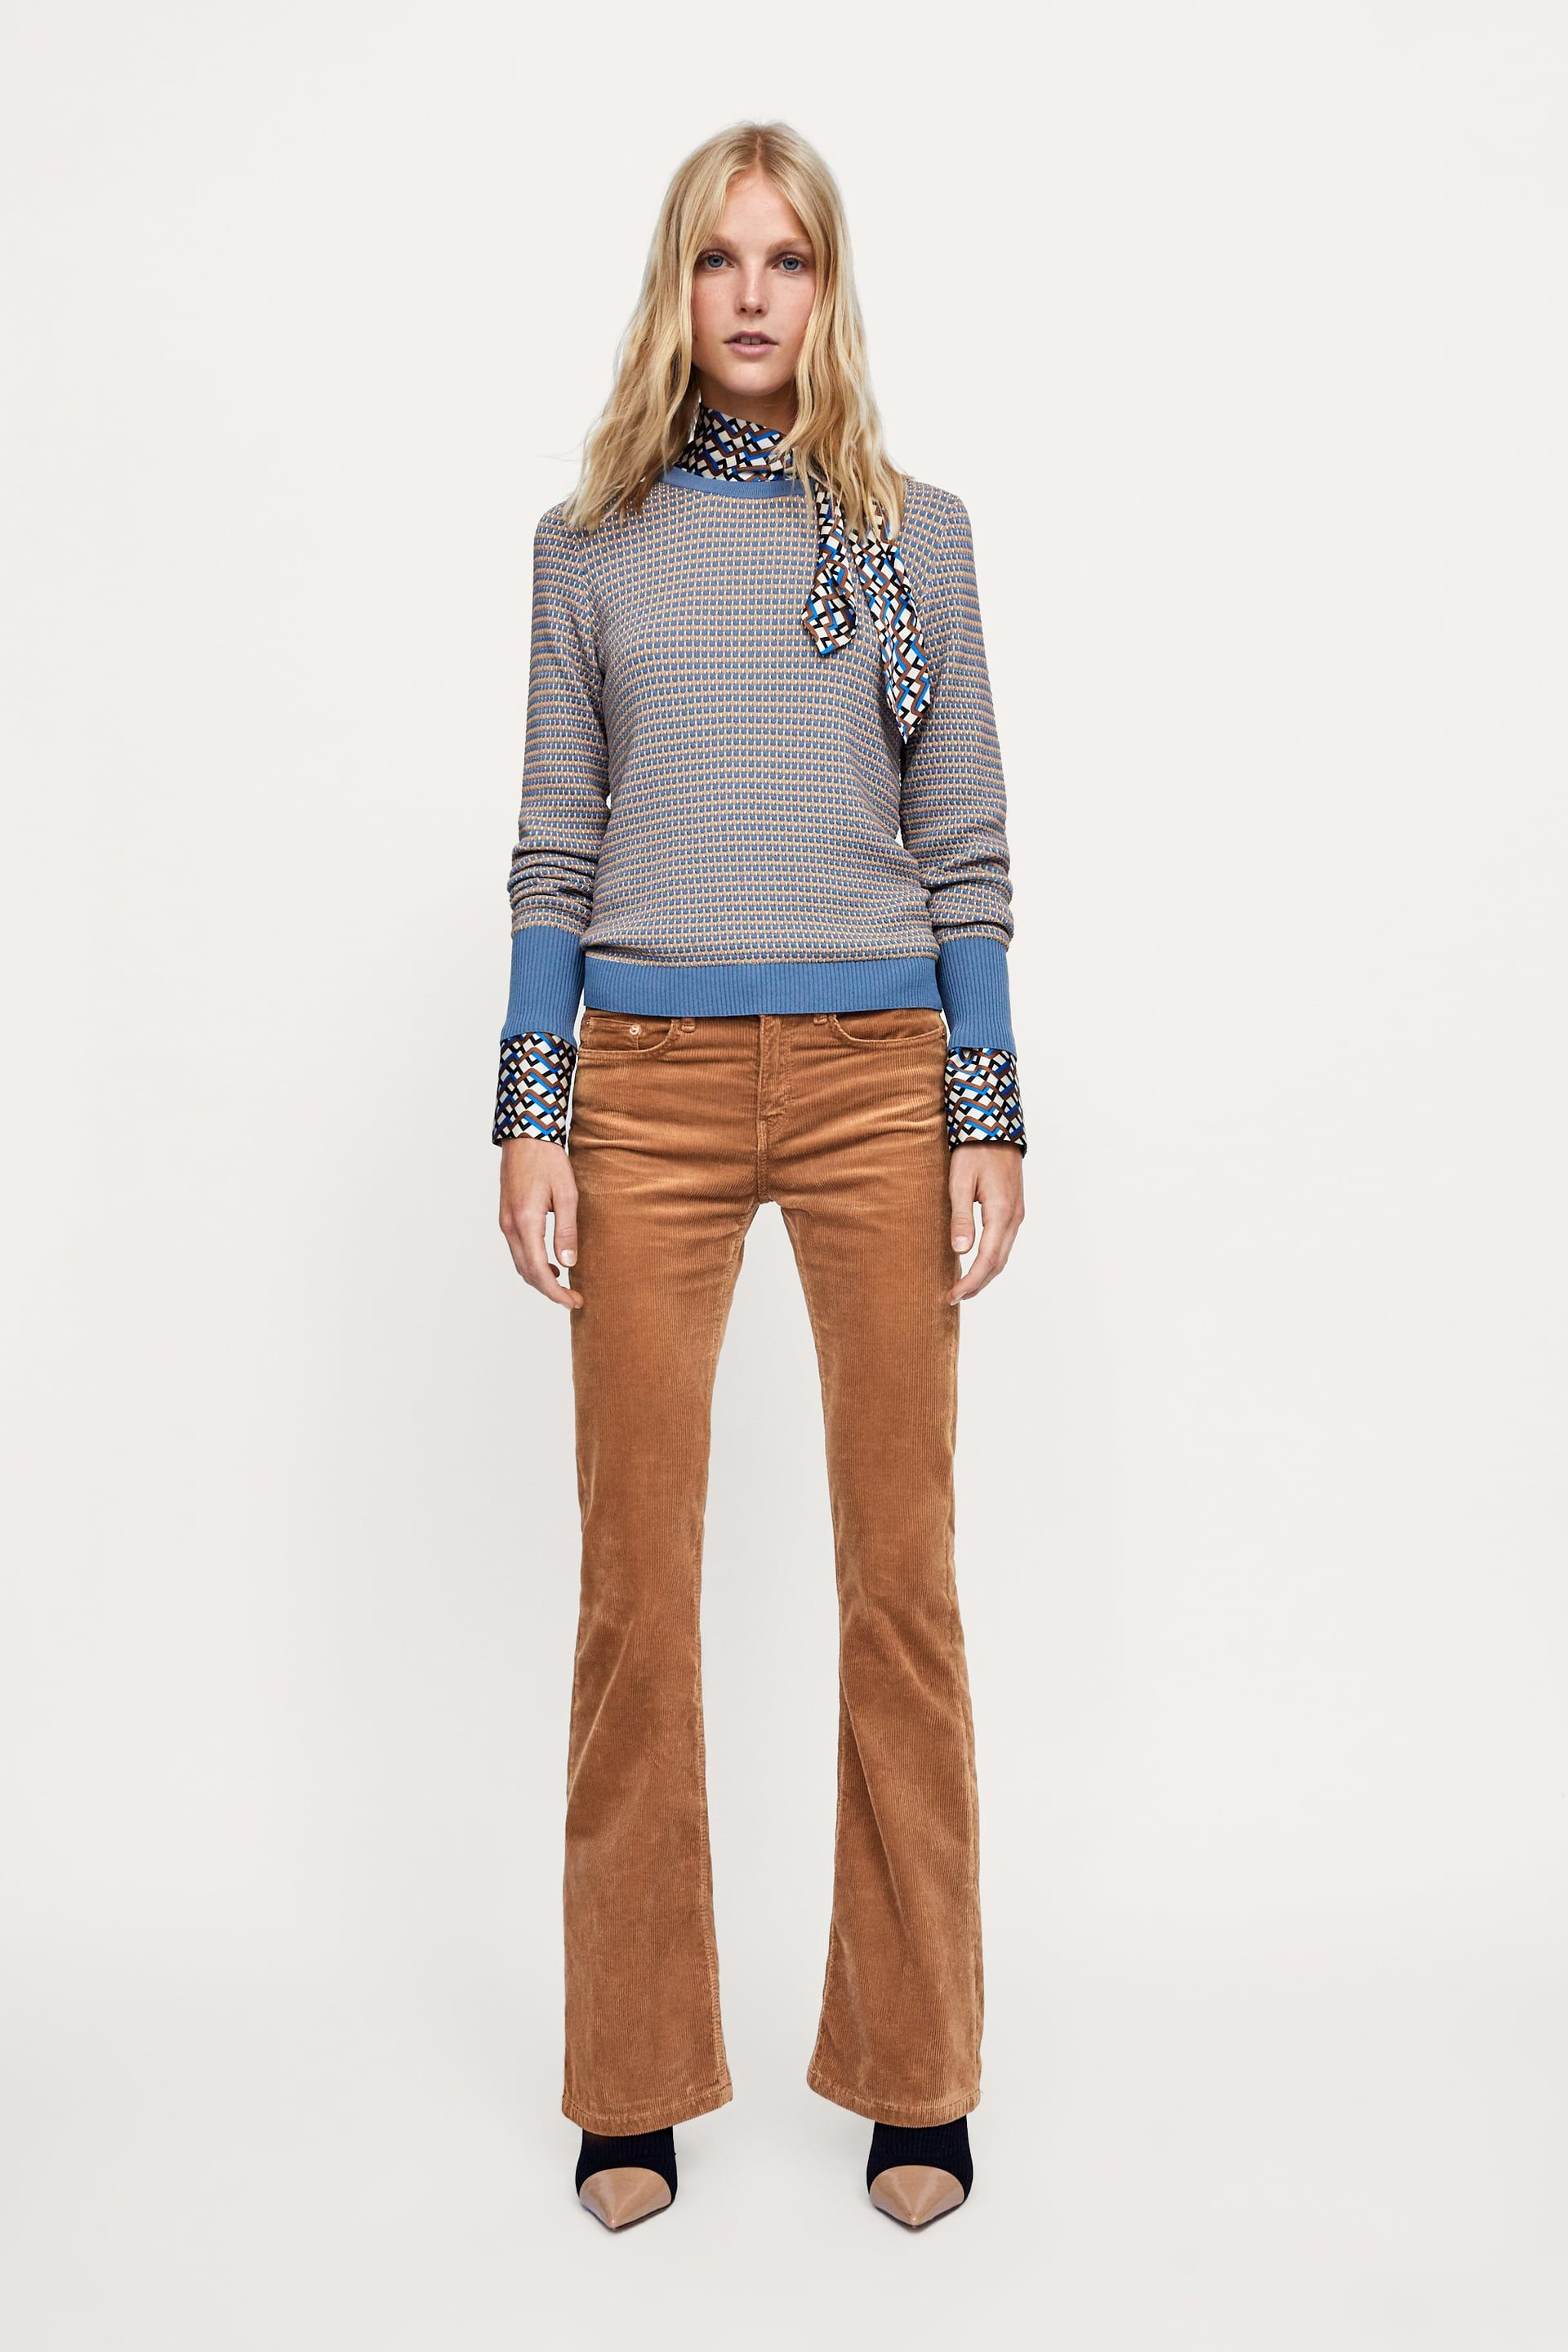 905a6228 Textured weave sweater | Style and outfit ideas | Blue sweaters ...